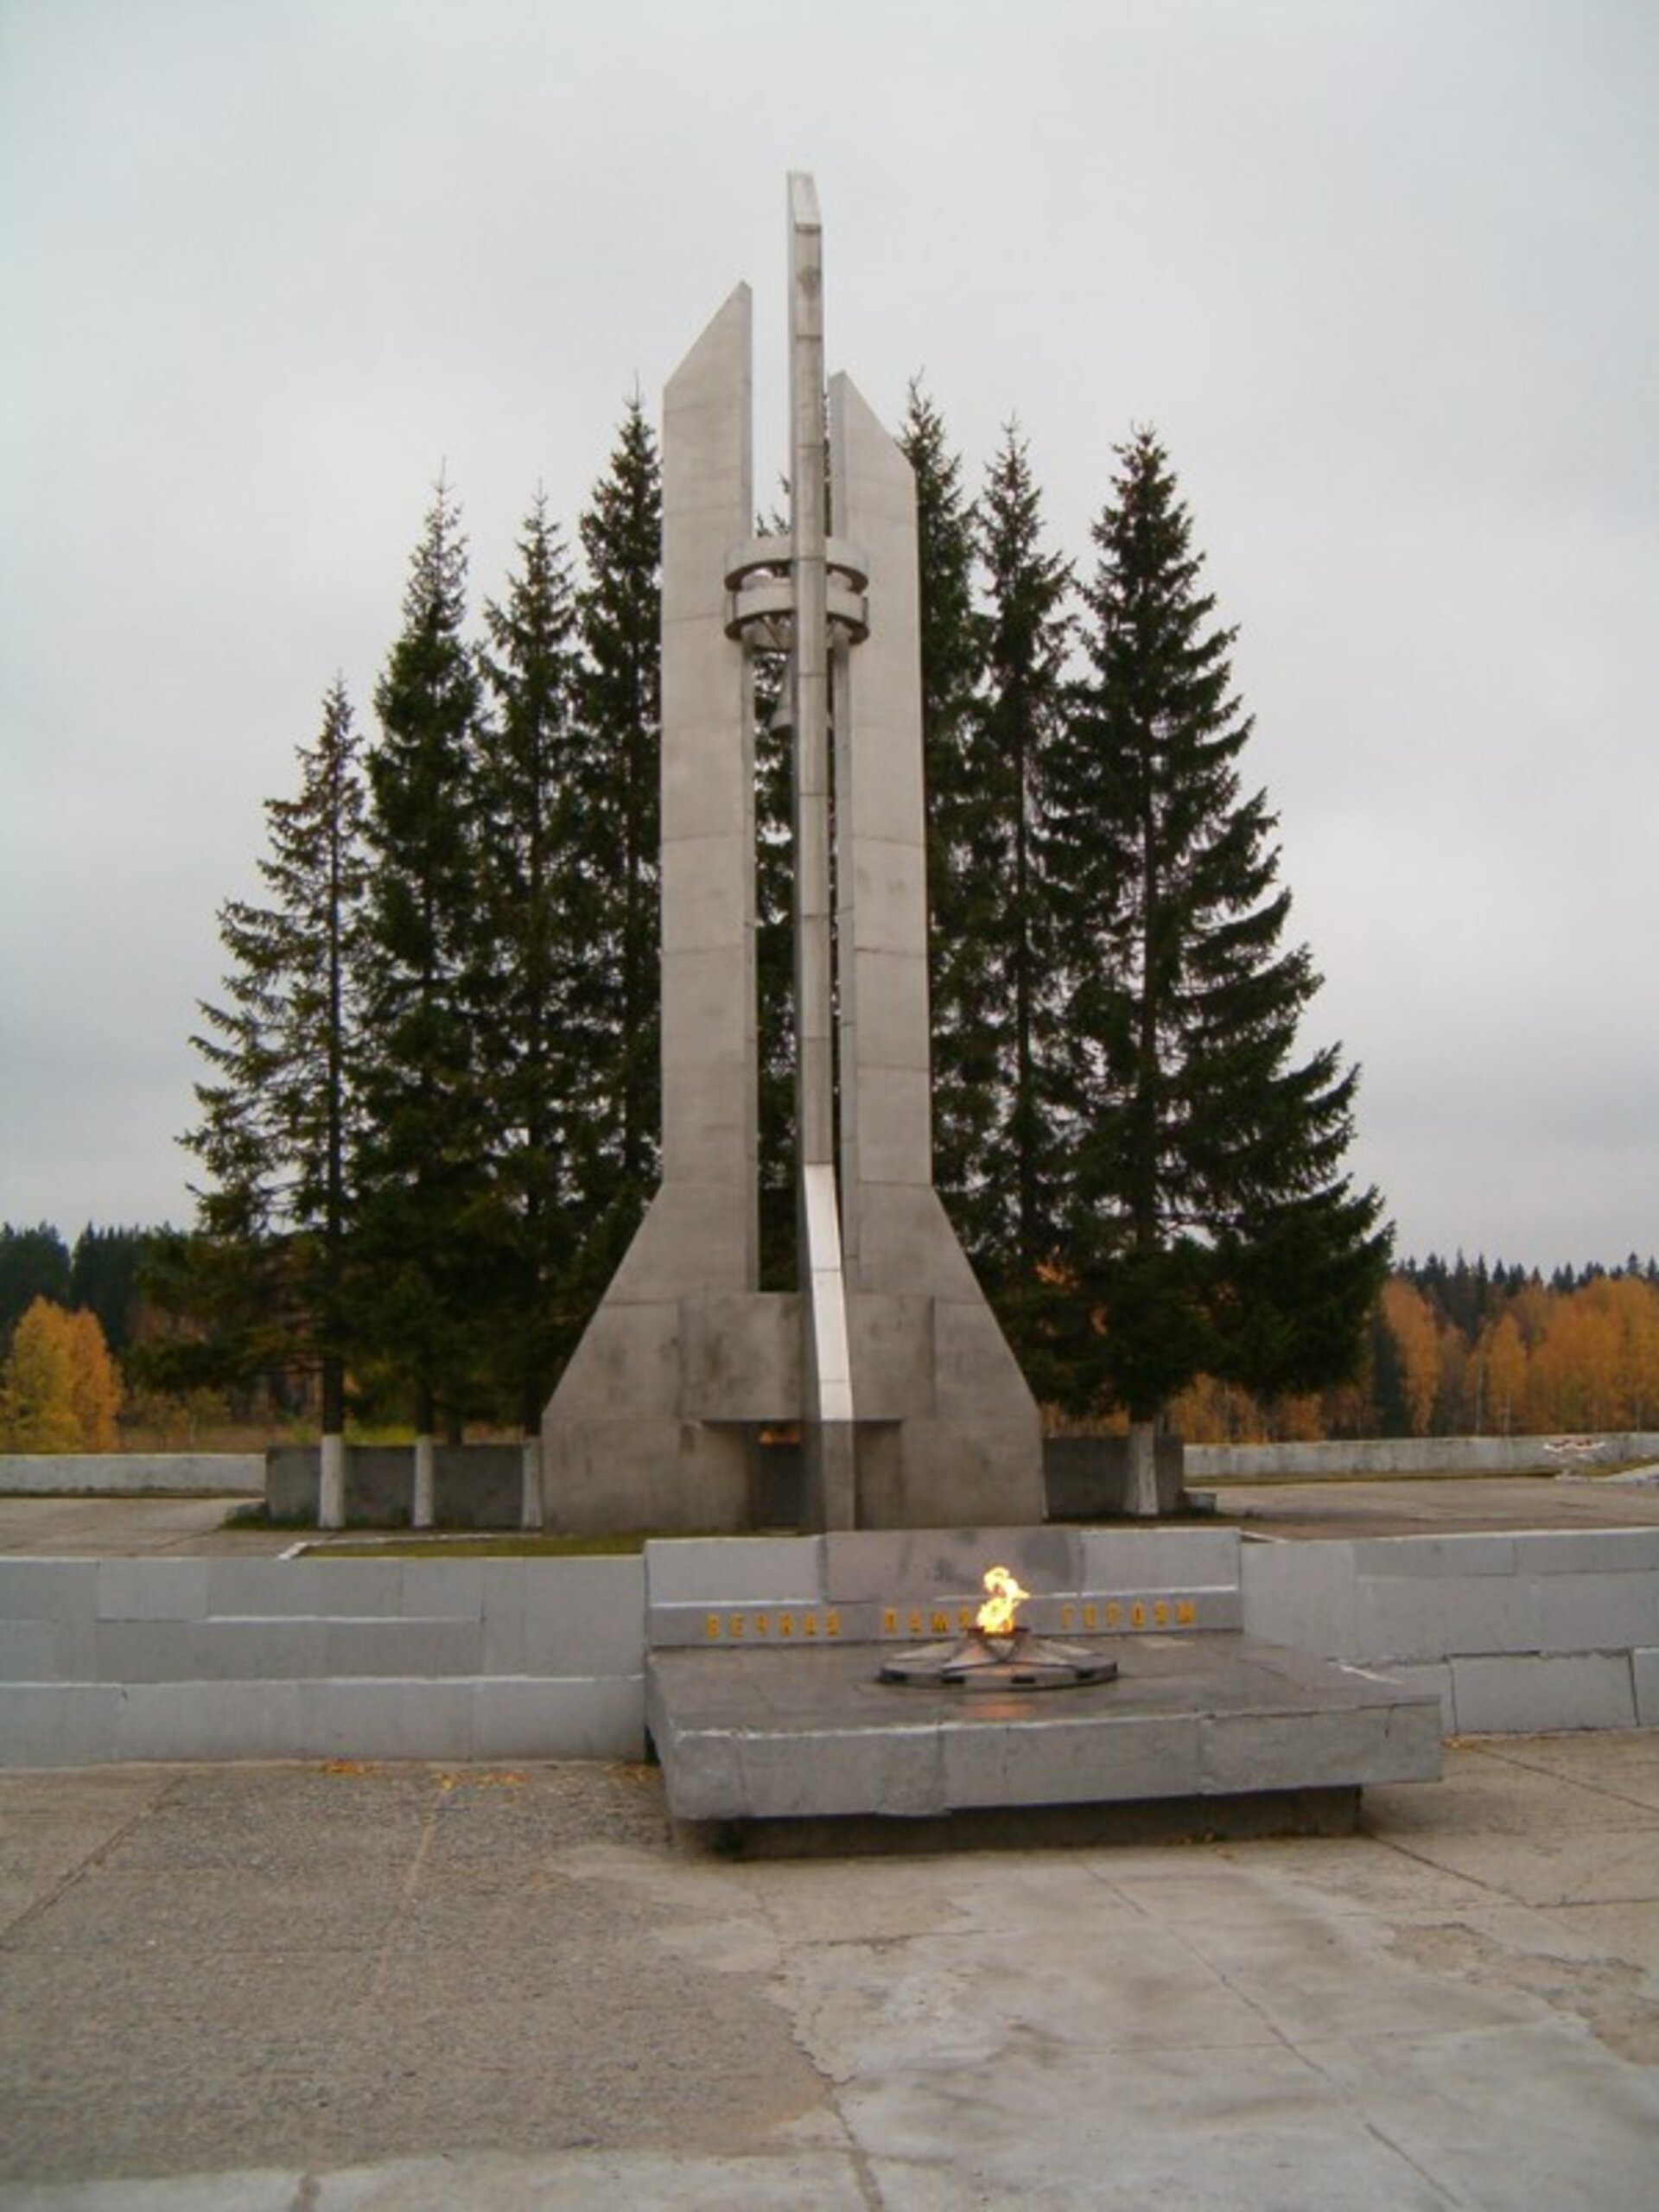 The memorial in Mirny